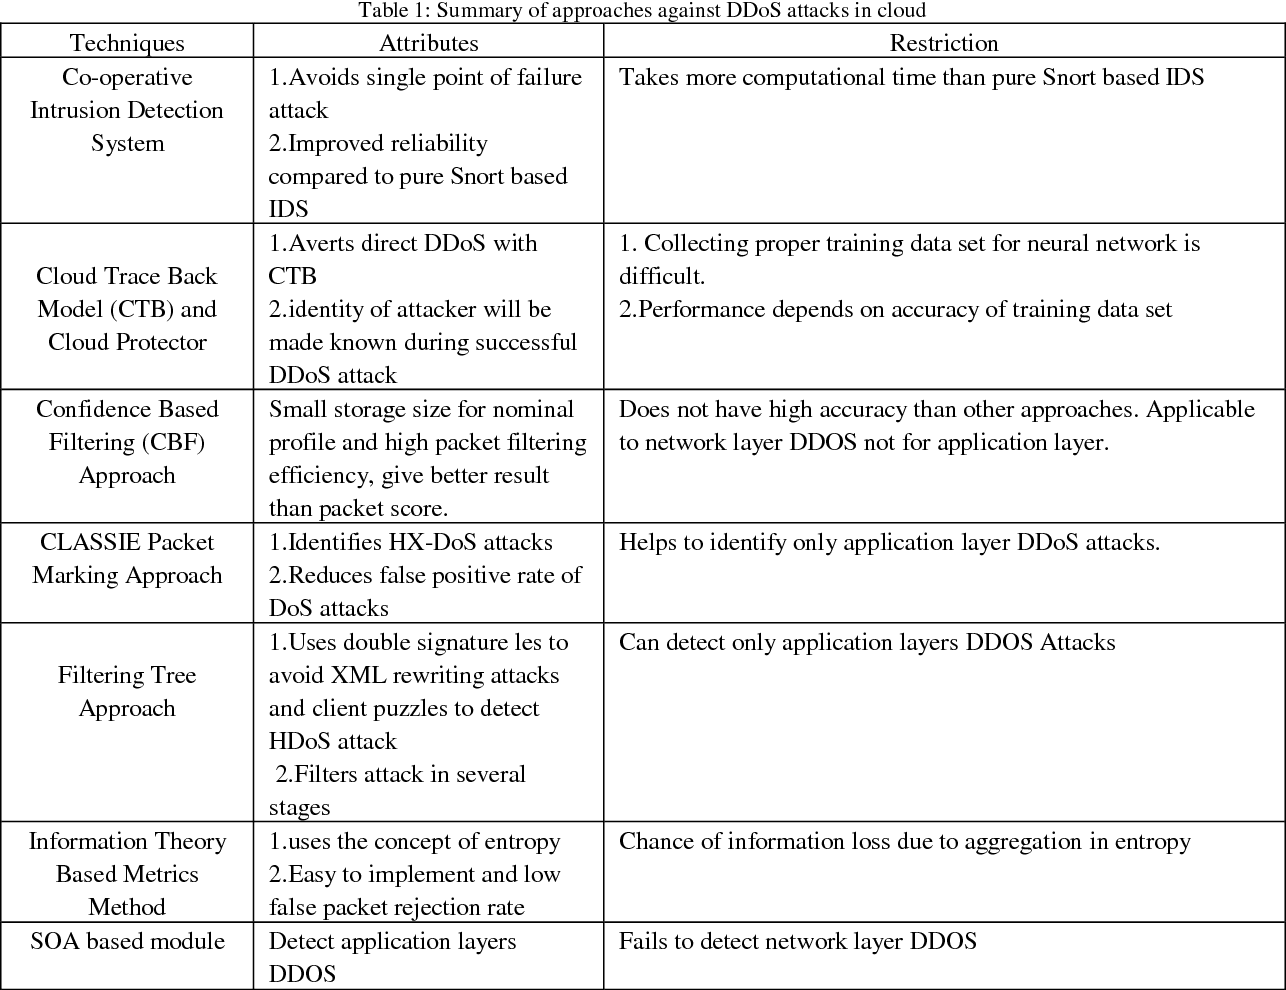 a review on dos and ddos attacks in cloud environment security